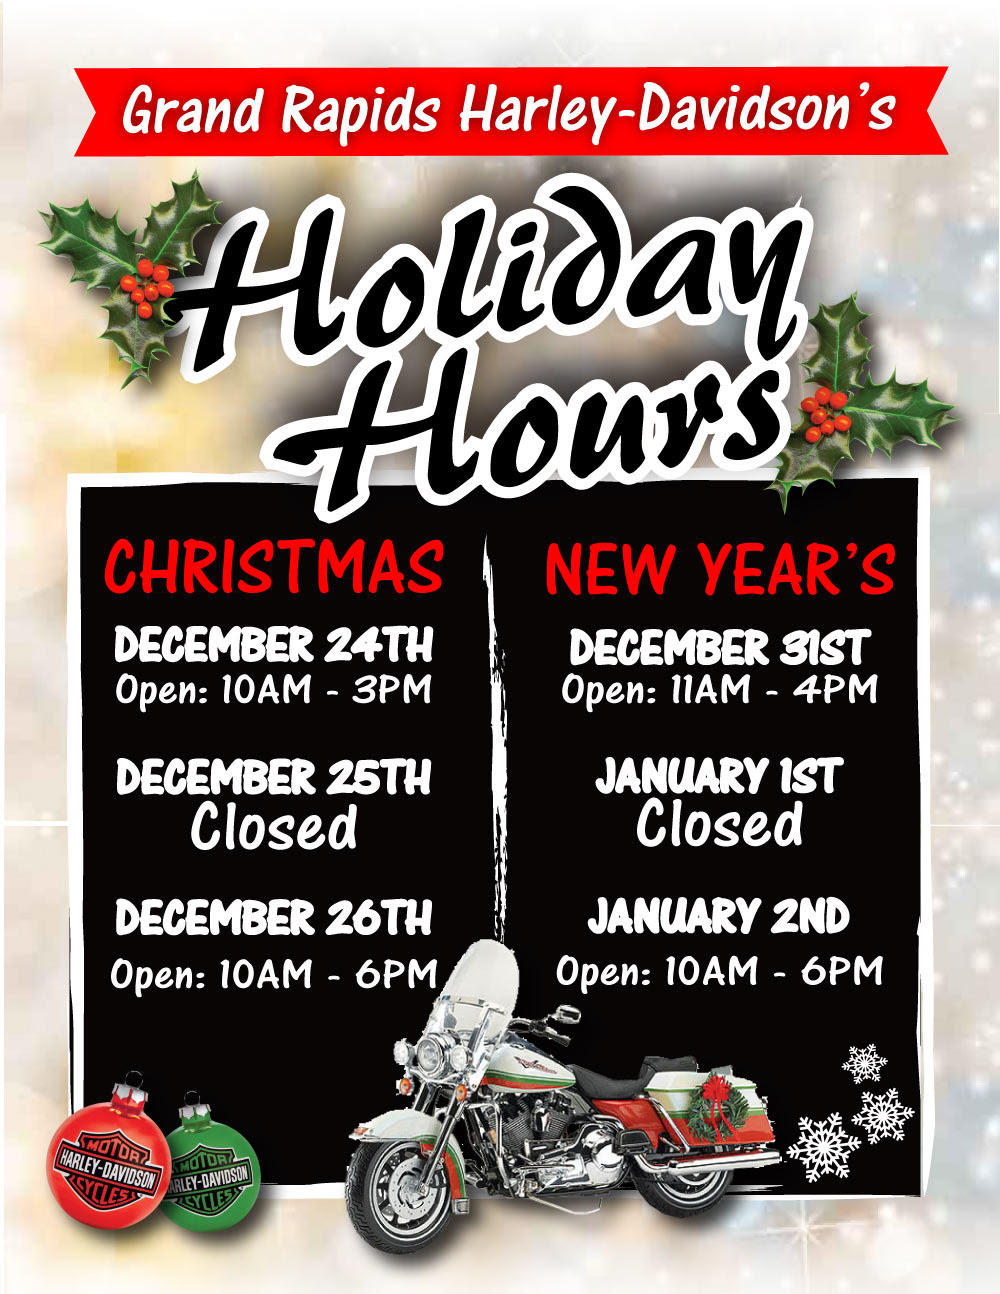 gr-hd holiday hours